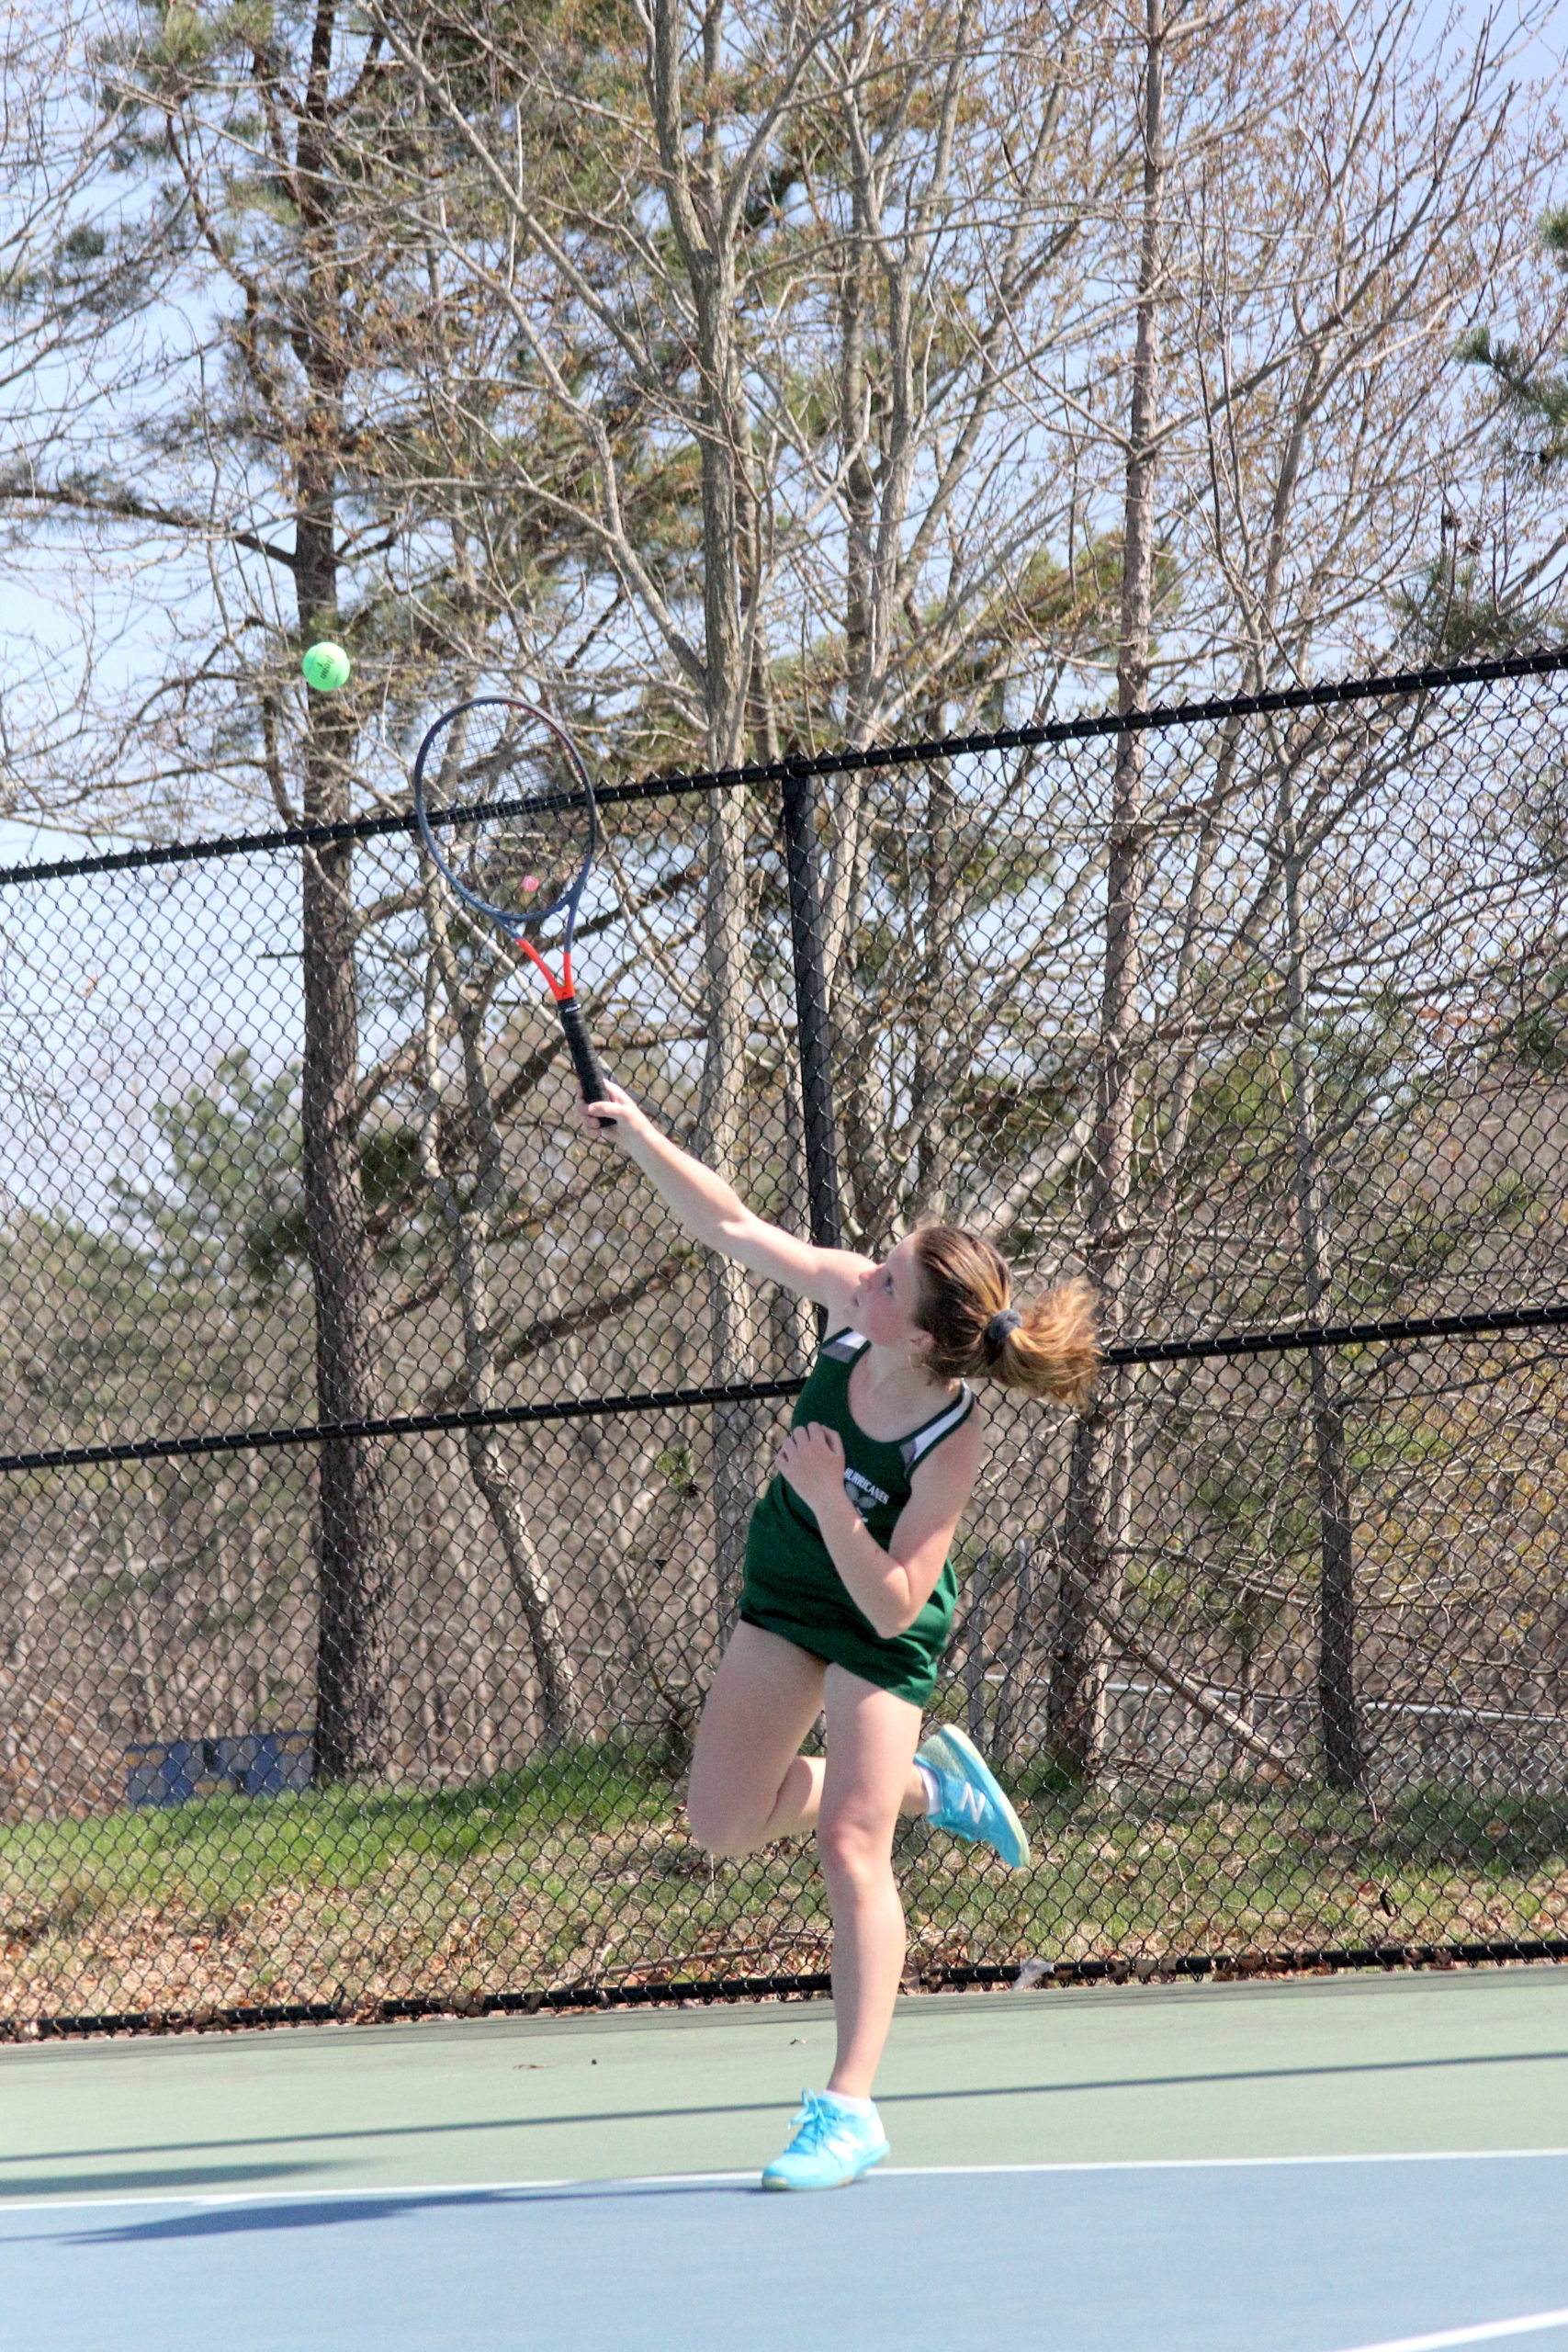 Westhampton Beach junior Katelyn Stabile serves up an ace in the Division IV doubles finals on Tuesday.